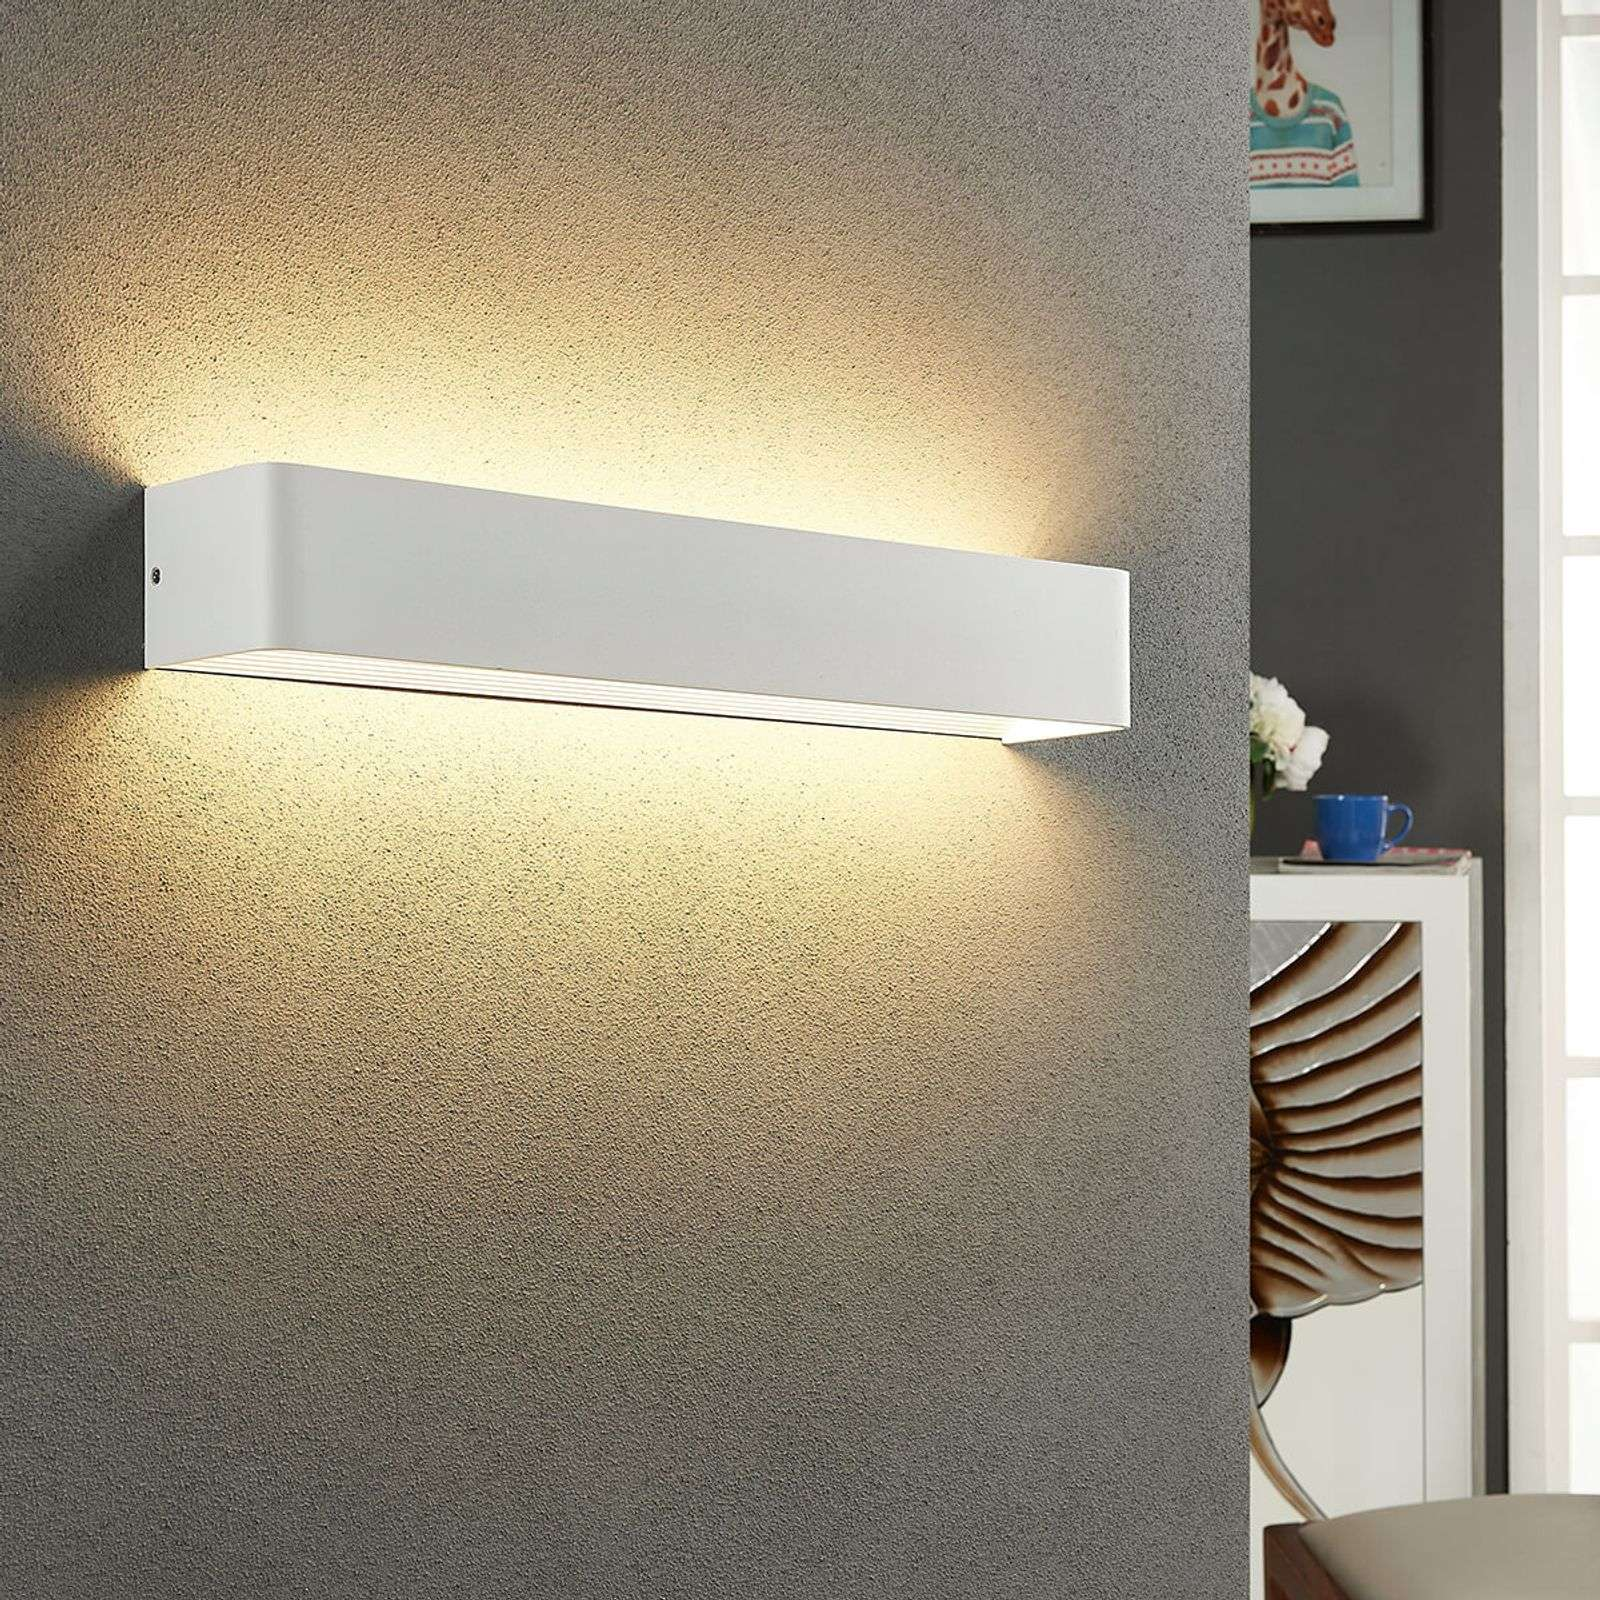 Lámpara de pared LED Lonisa de agradable luz